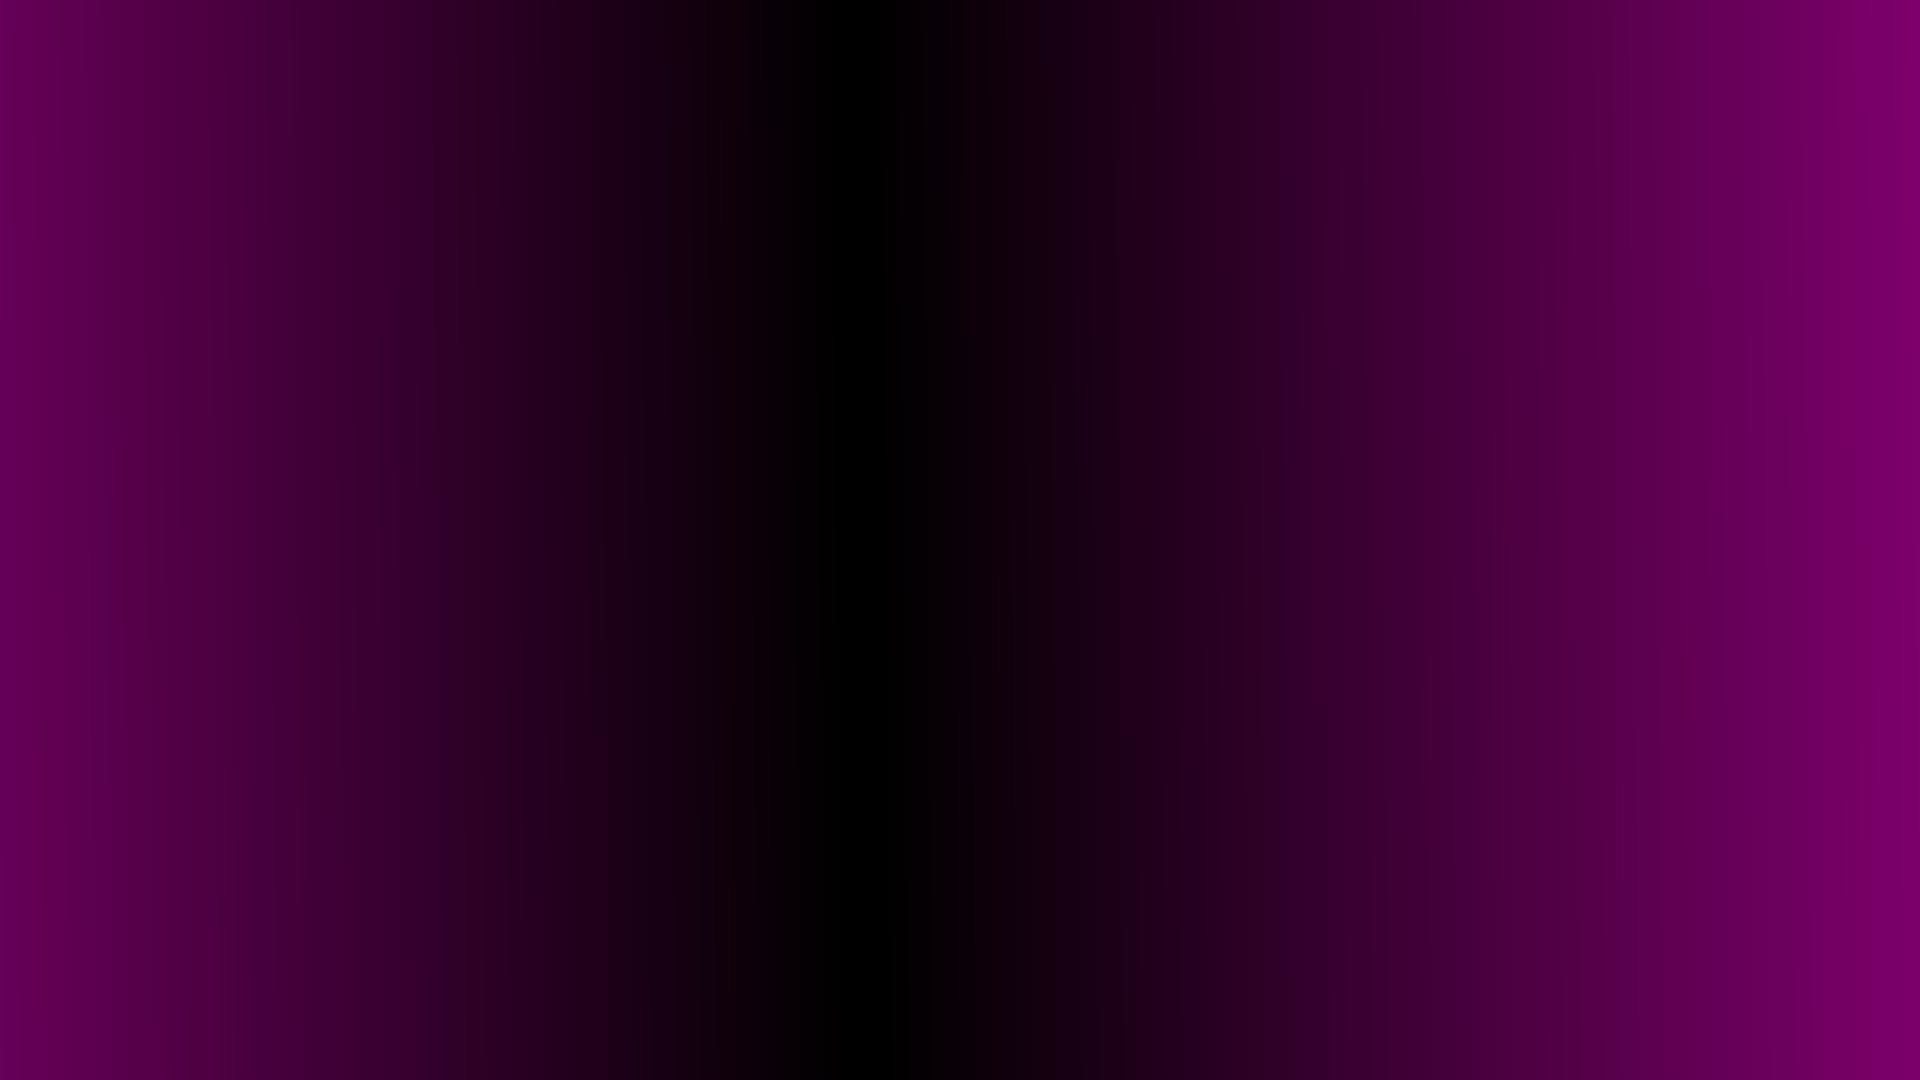 wallpaper.wiki-Pink-And-Black-HD-Images-PIC-